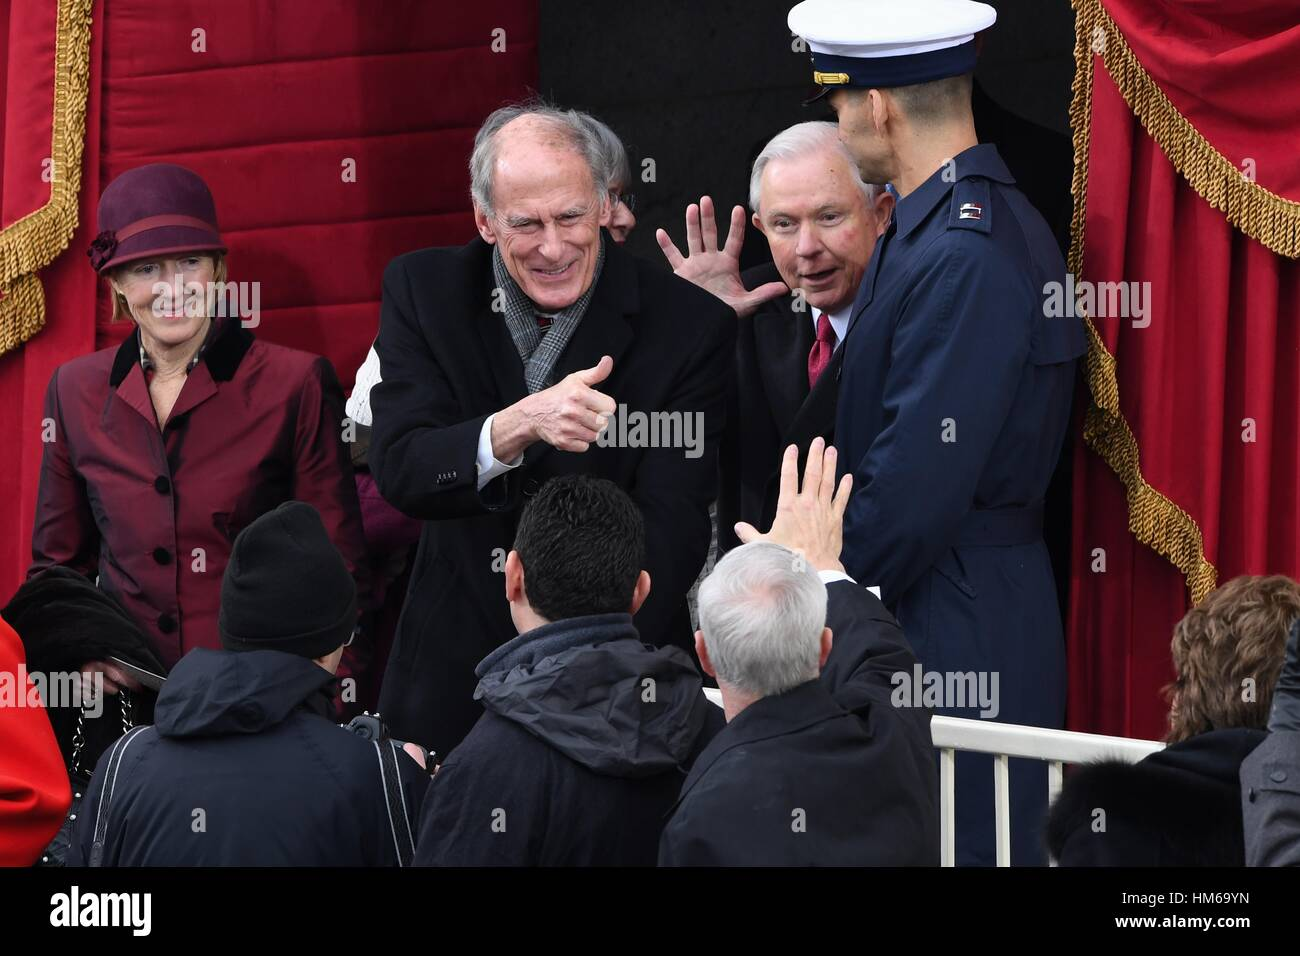 Director of National Intelligence Dan Coats, center, and Attorney General Jeff Sessions arrive for the 68th President - Stock Image